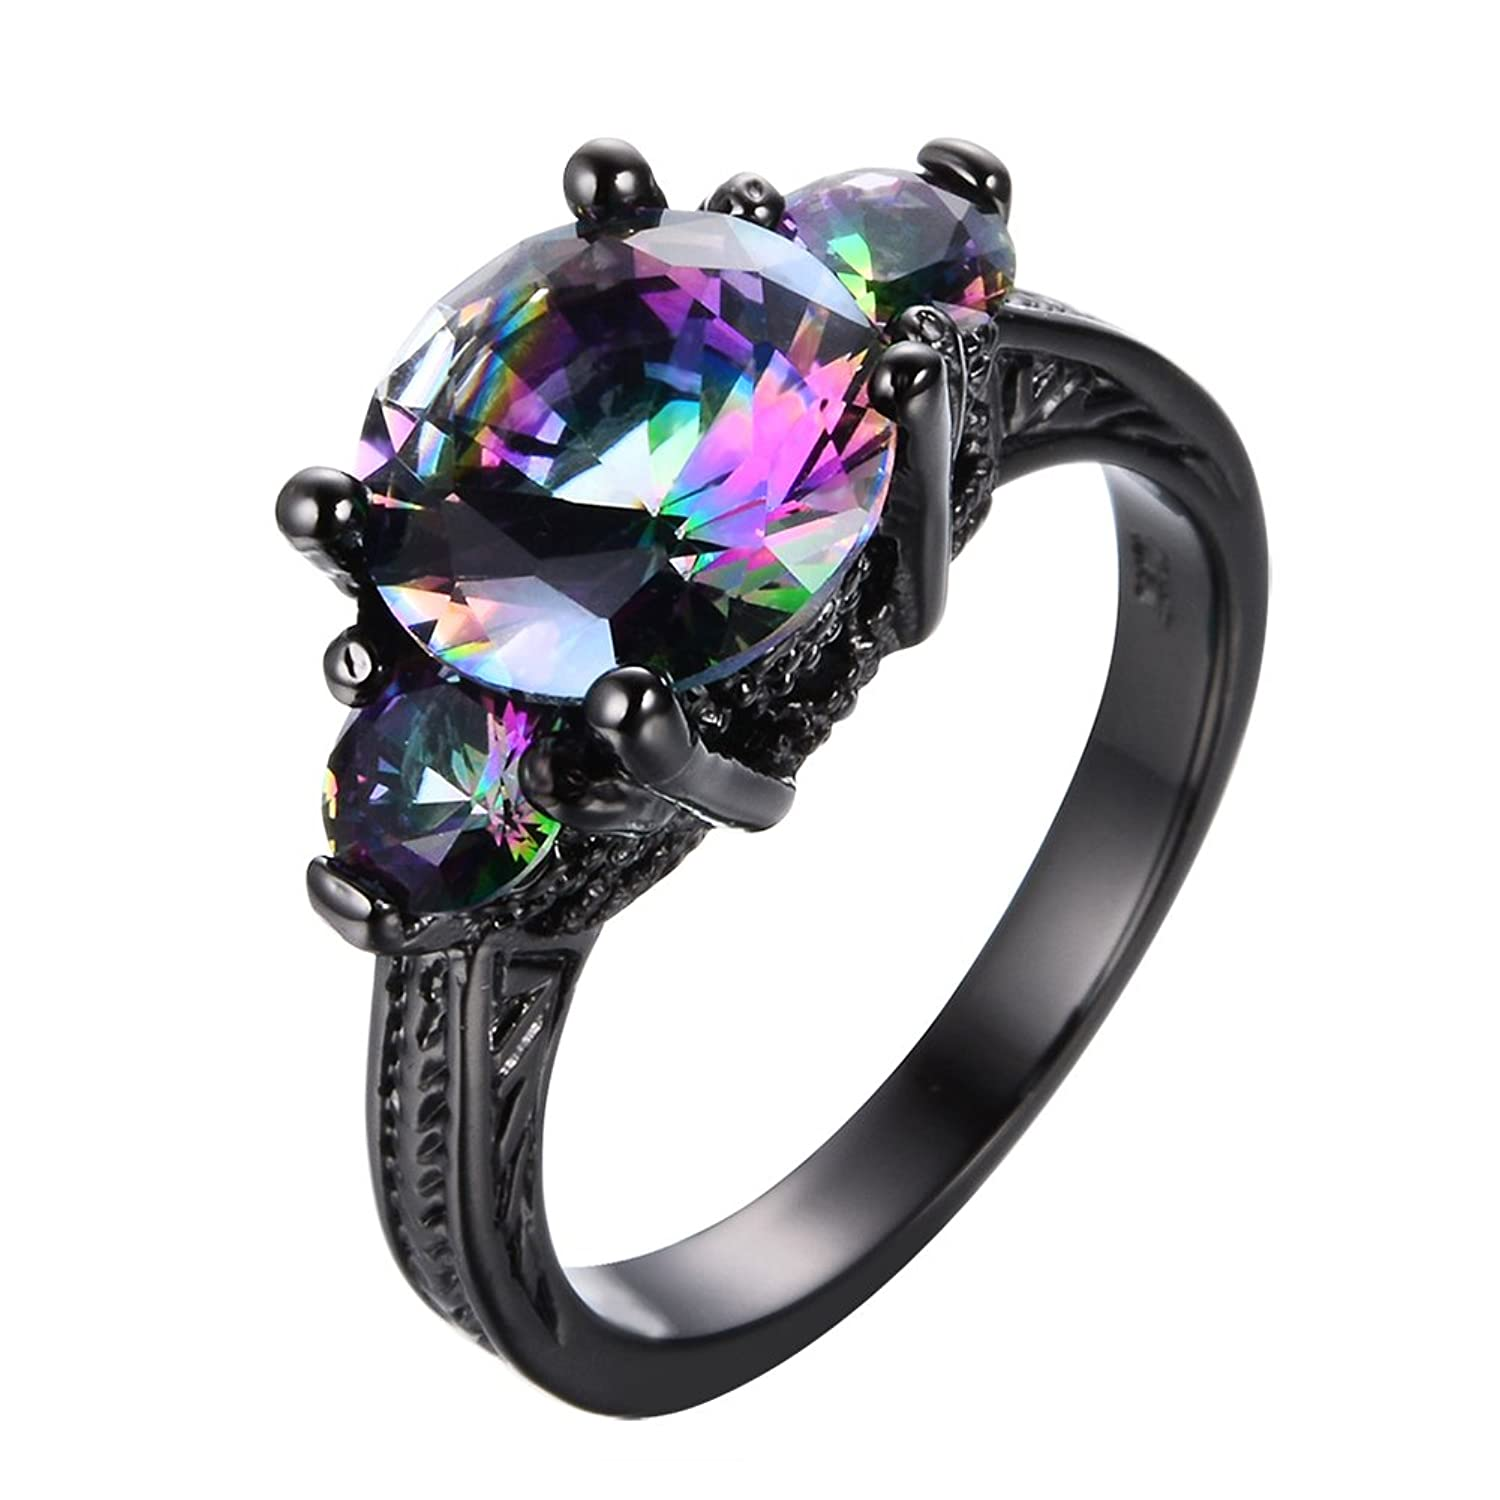 Junxin Jewelry 2016 New Mysterious Rainbow Topaz Ring,14kt Black Gold  Wedding Rings Sz 9